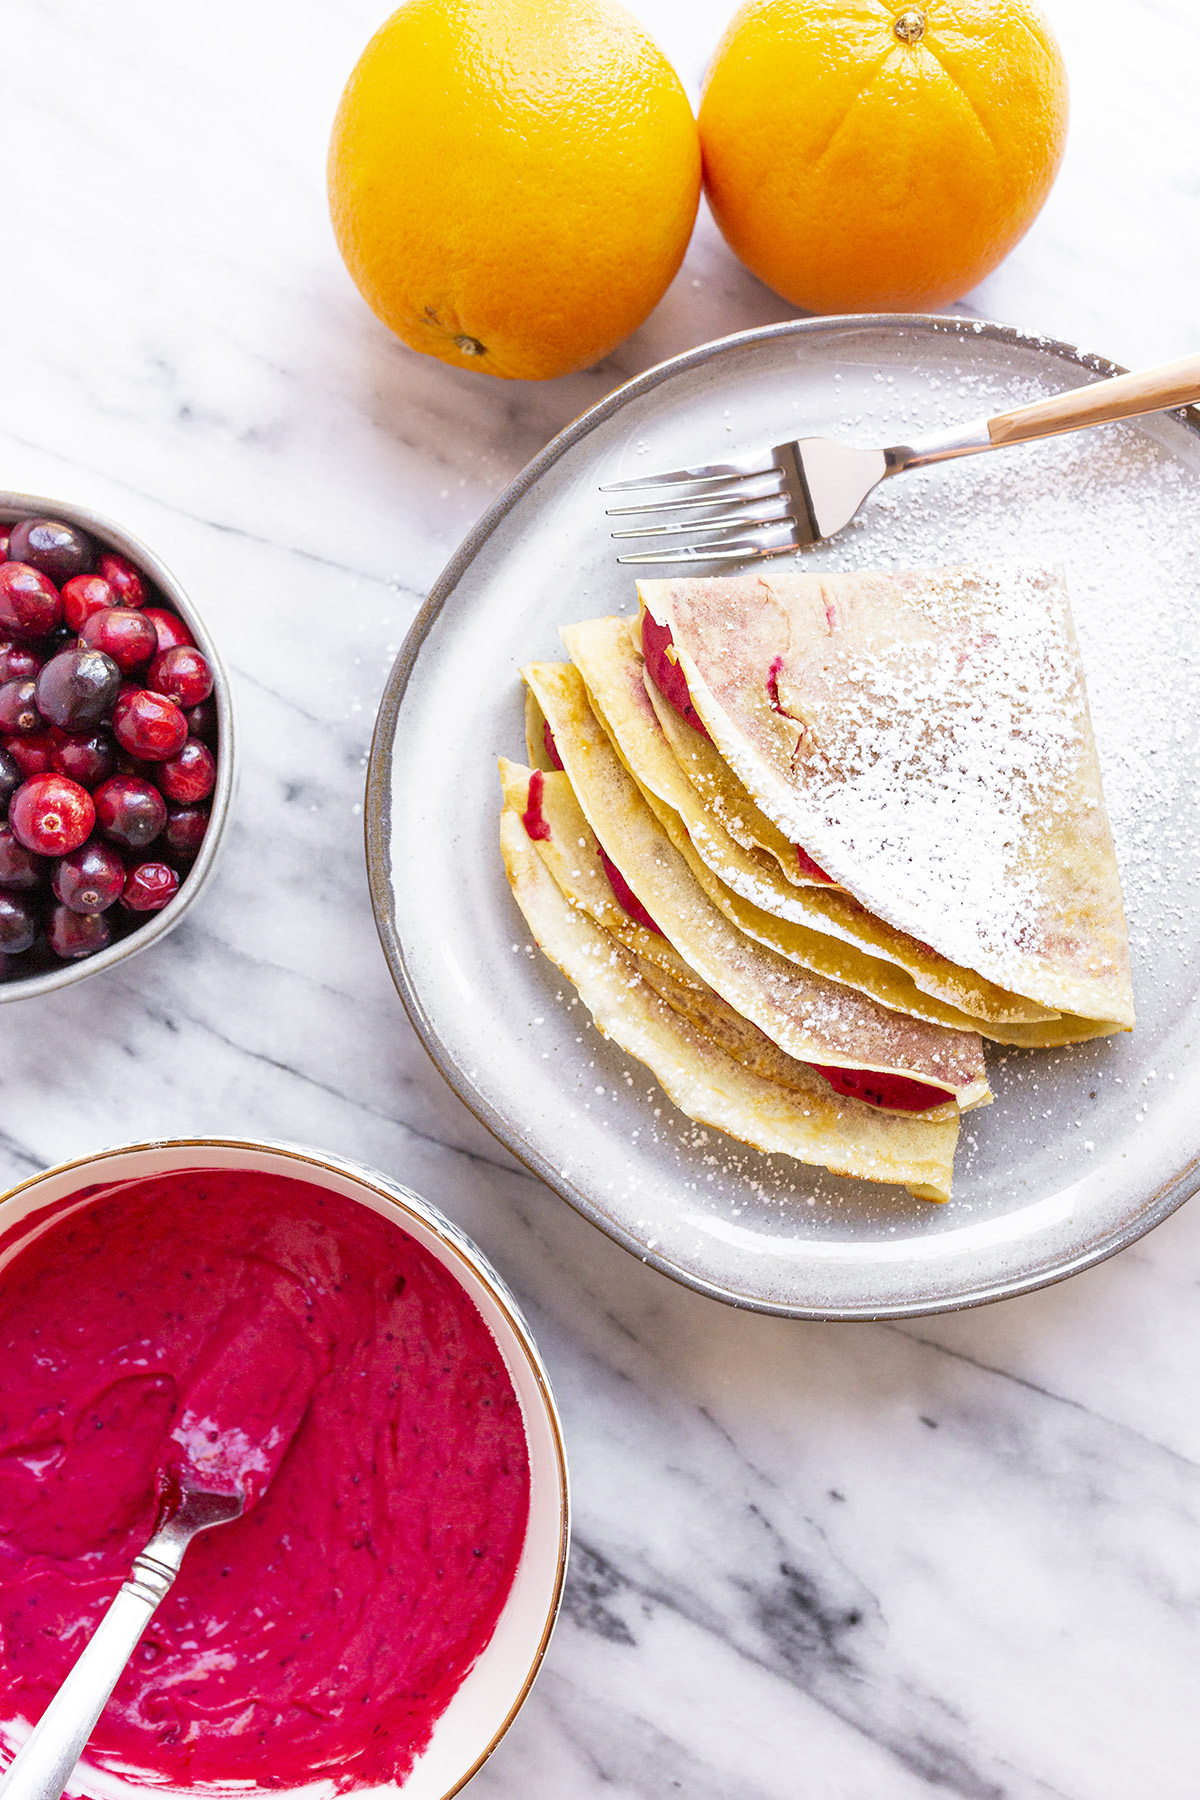 Crepes filled with Cranberry, Orange and Mascarpone. Homemade, simple, delicious!